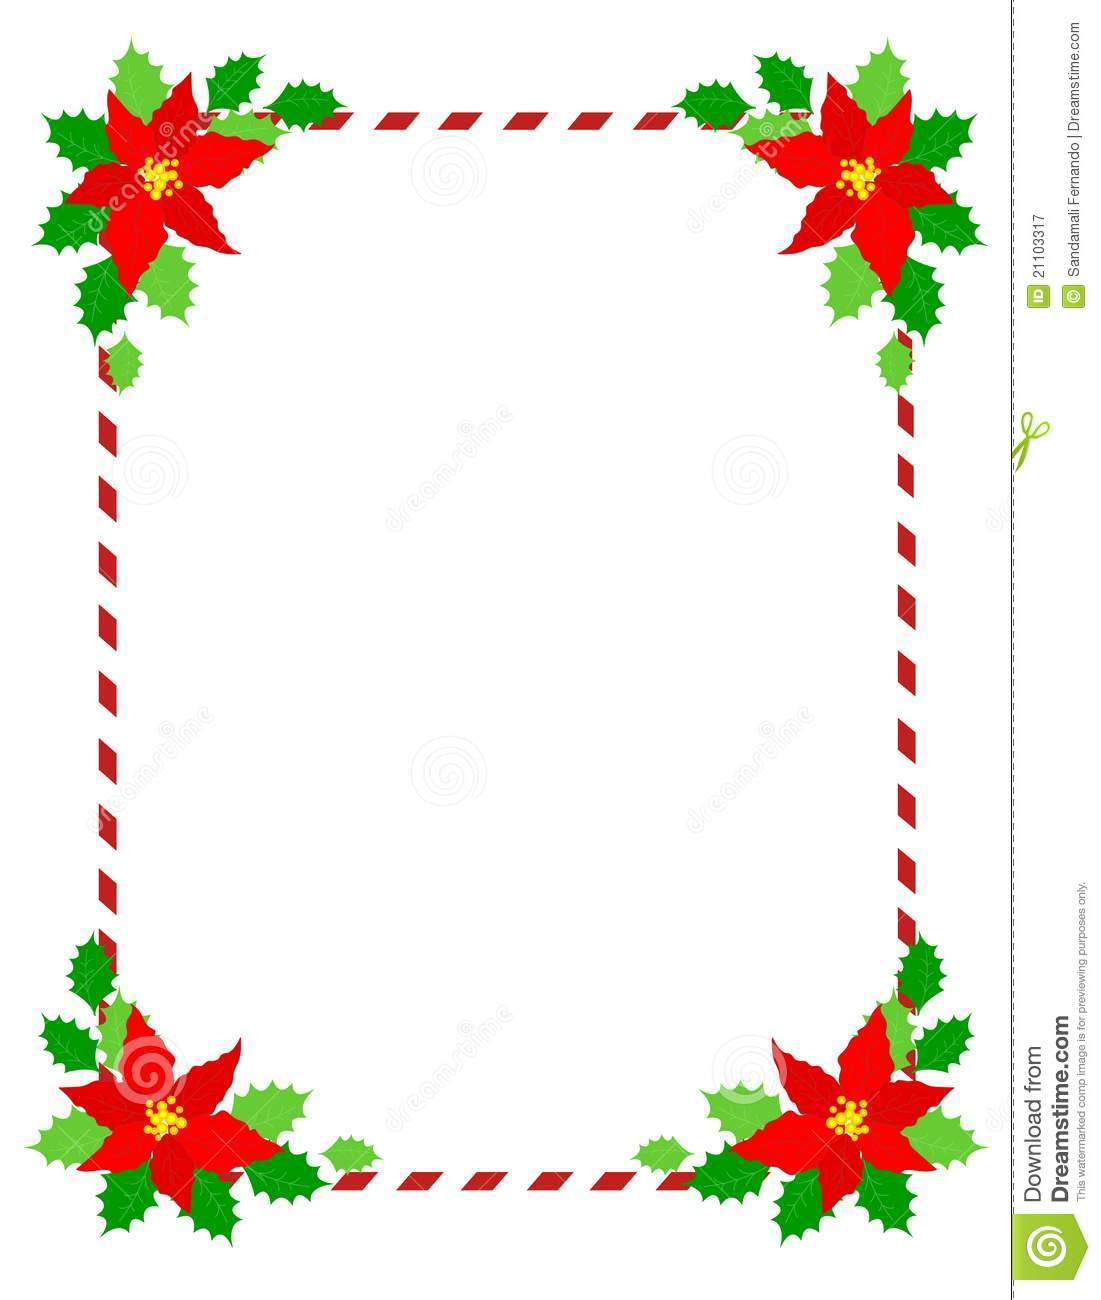 Christmas Frame Poinsettia Royalty Free Stock Photography